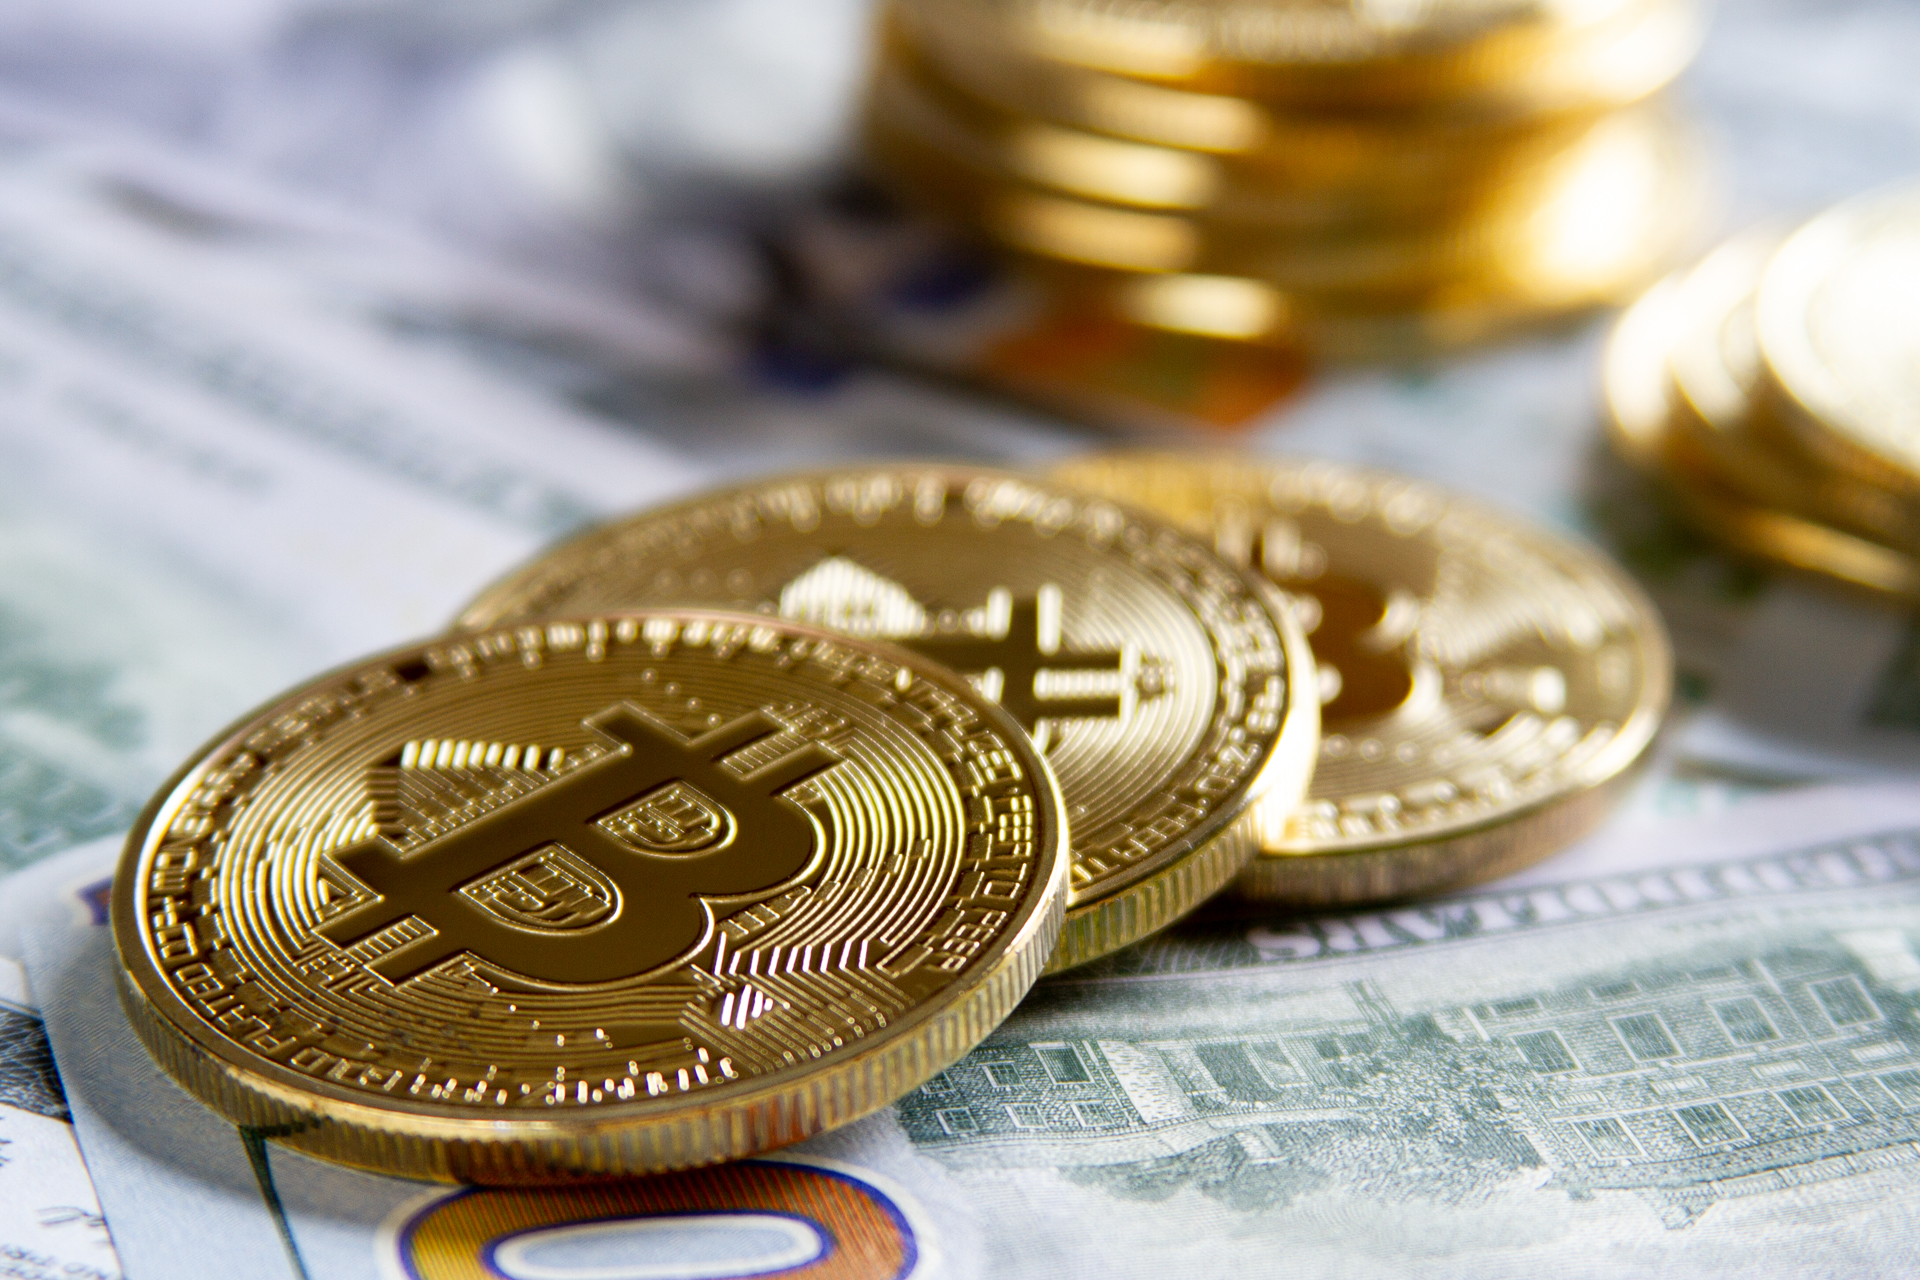 Free Bitcoin And Cryptocurrency Images